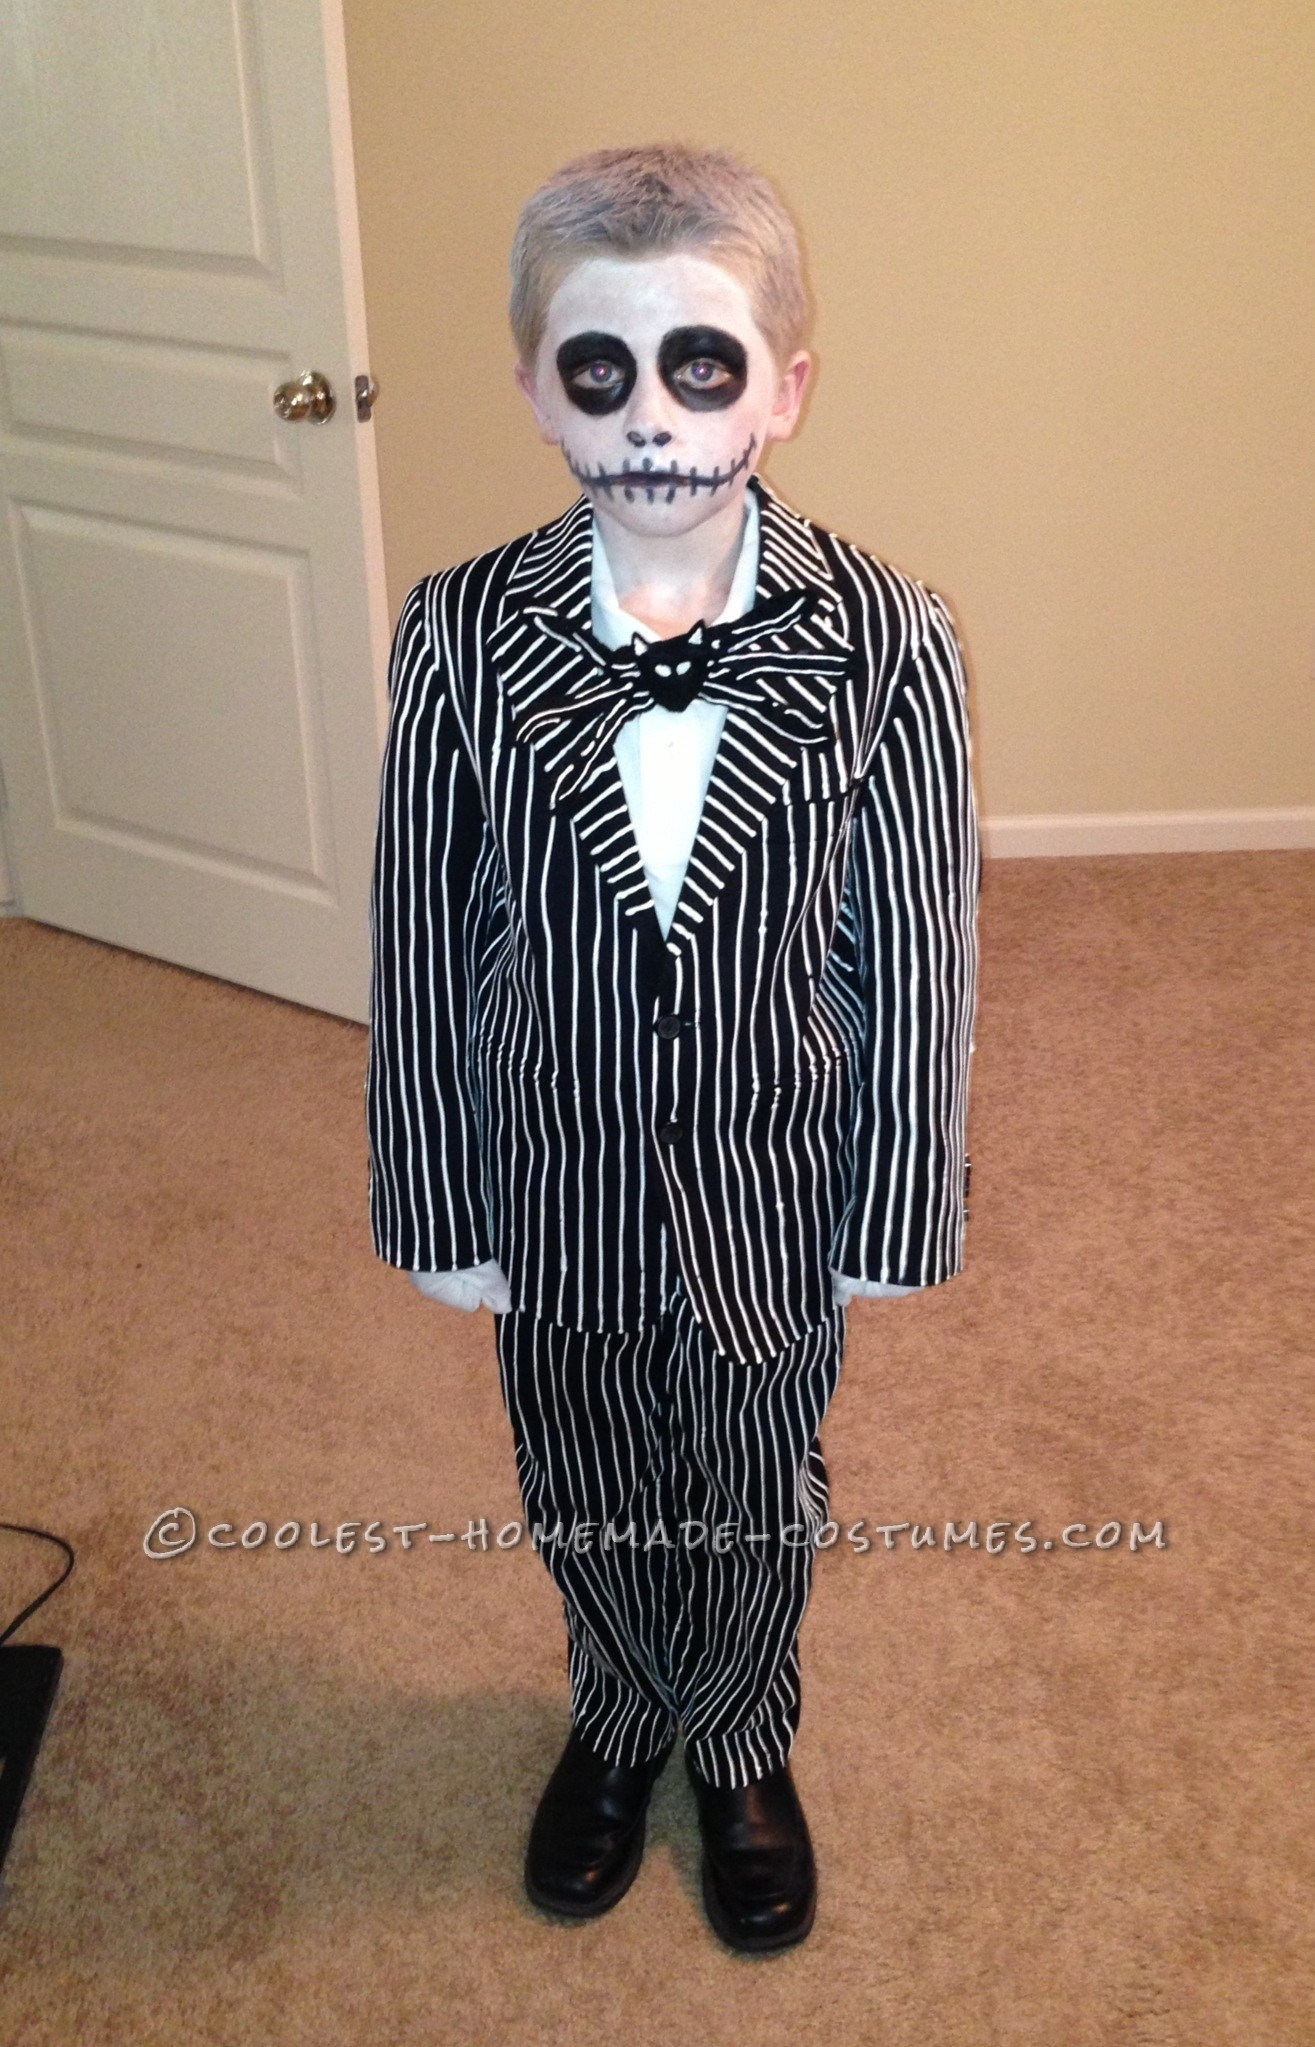 cool homemade jack skellington costume from nightmare before christmas